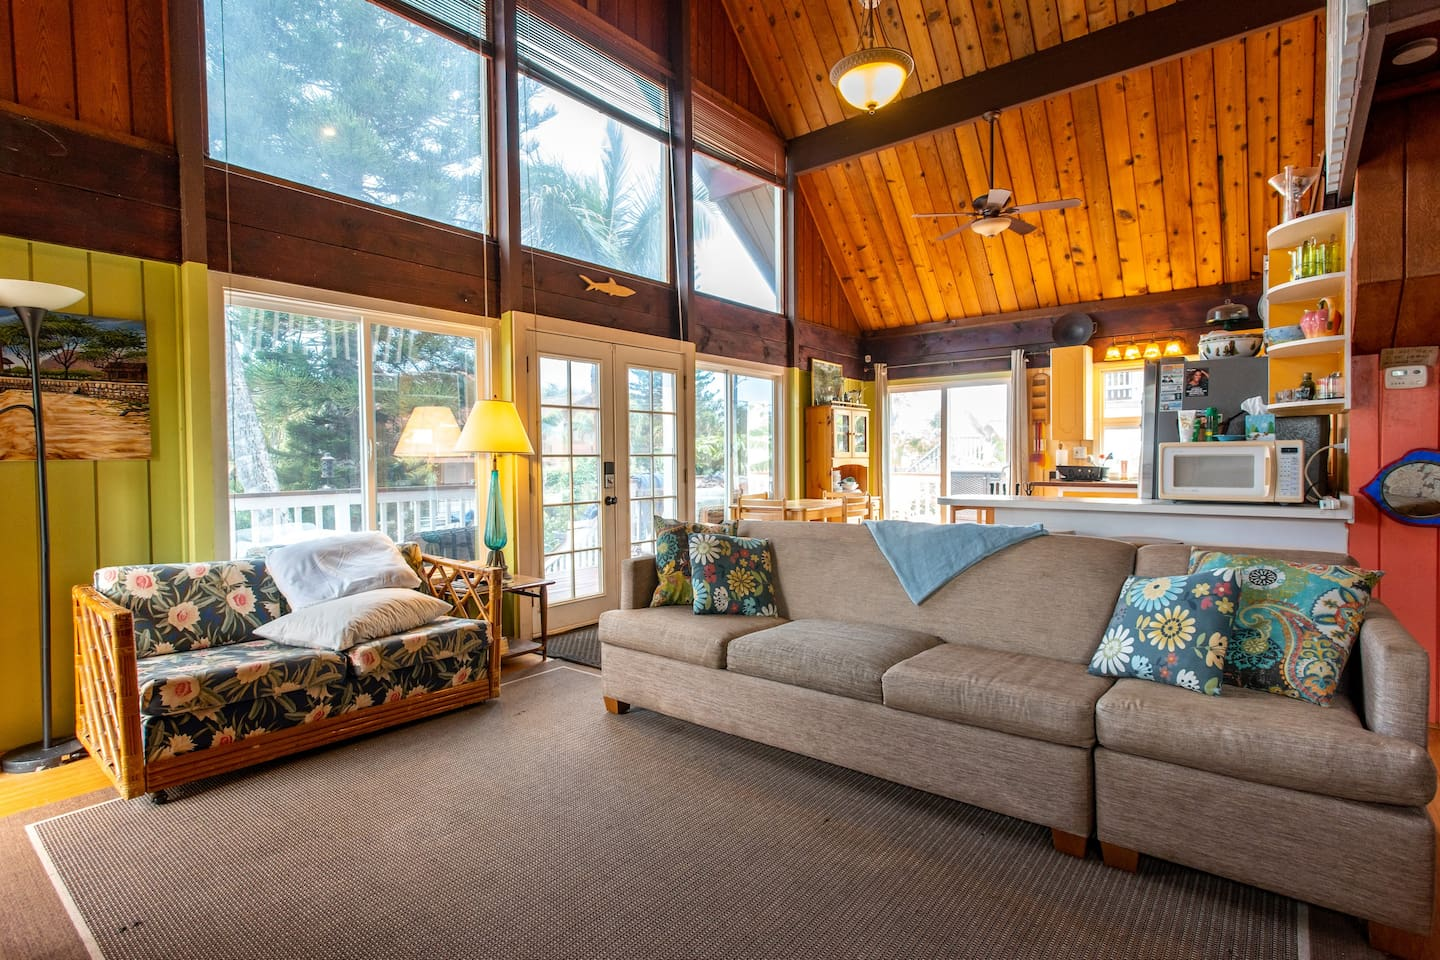 Large picture windows let the light in through slightly tinted windows to cast a heavenly glow throughout!